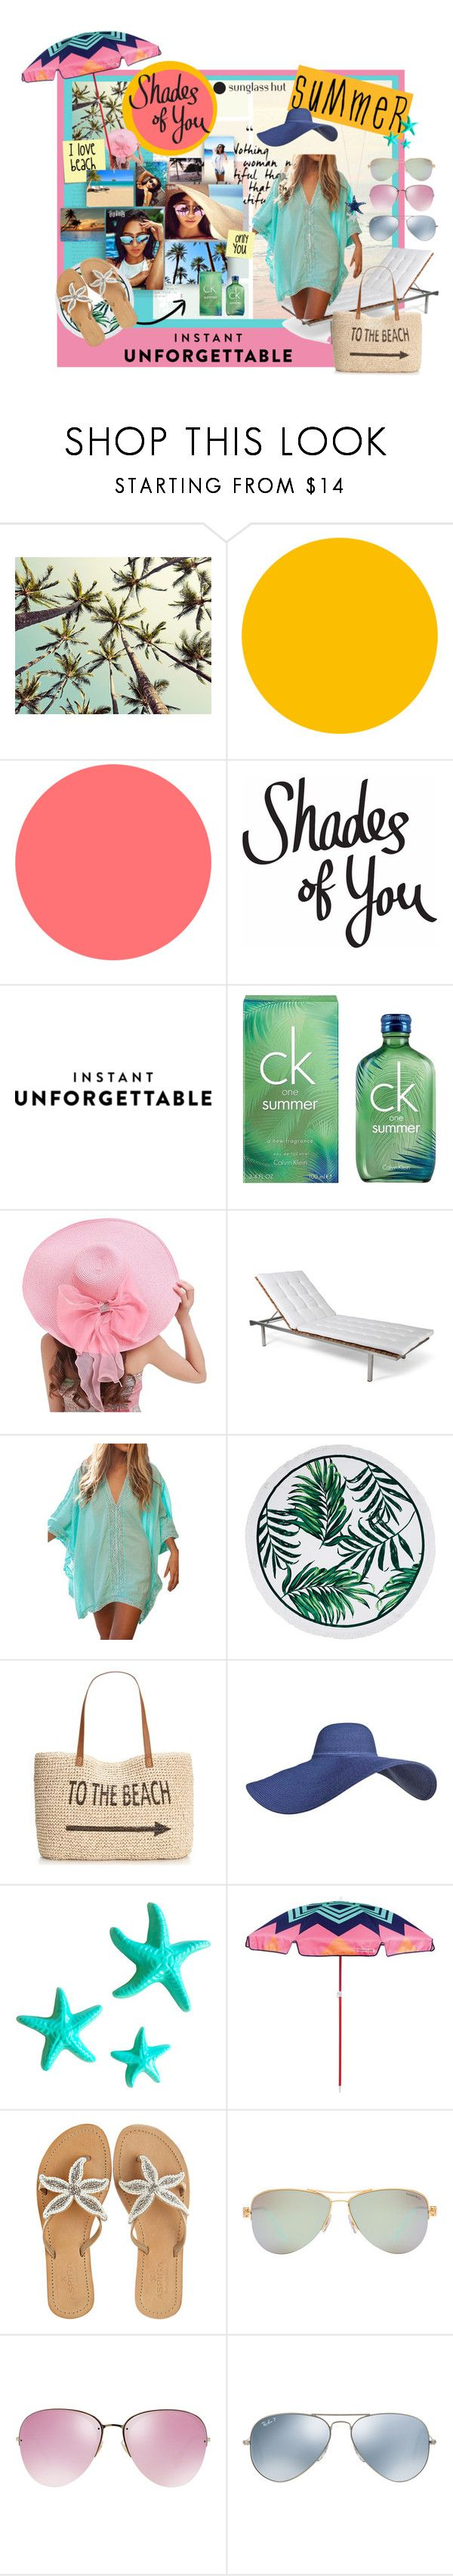 shades of you sunglass hut contest entry by siam tulip on polyvore